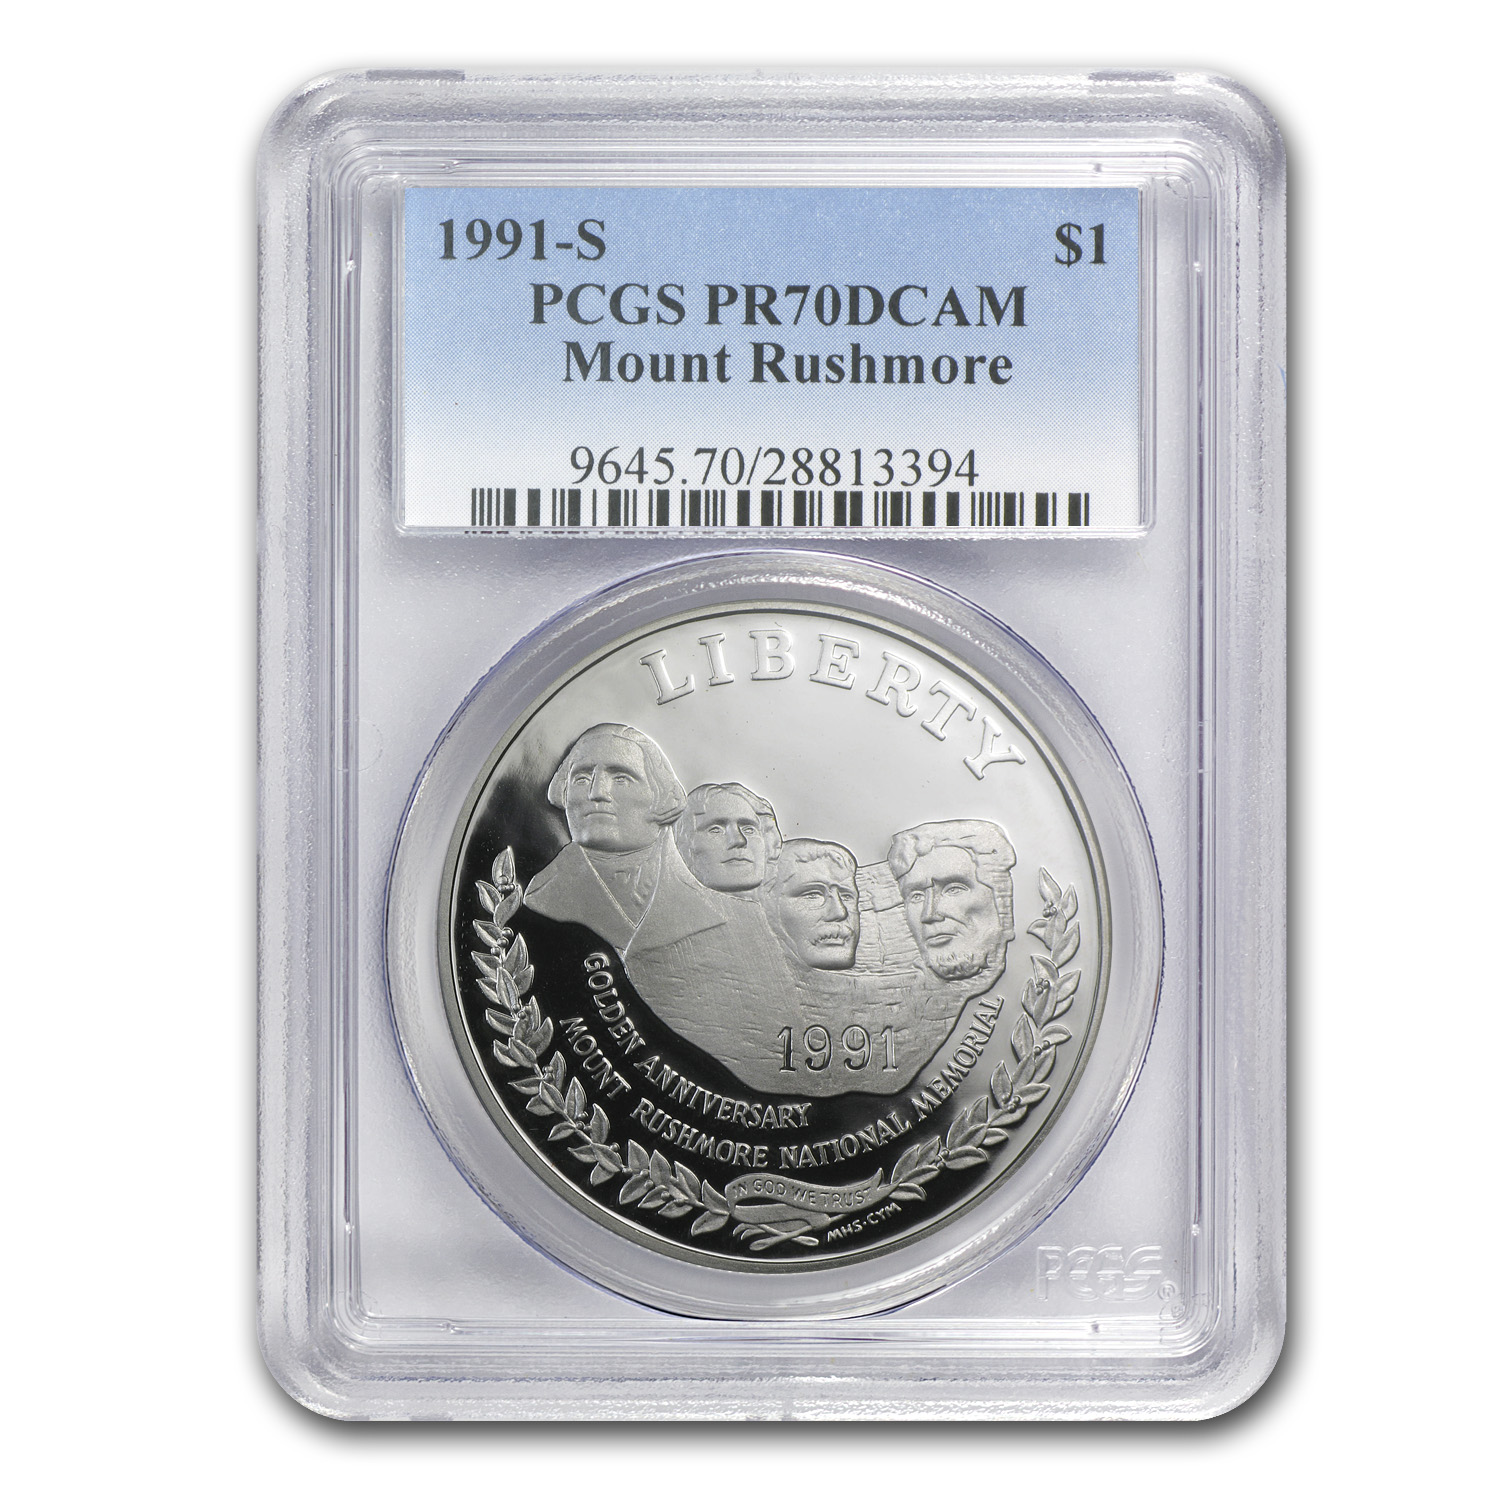 1991-S Mount Rushmore $1 Silver Commemorative PR-70 PCGS